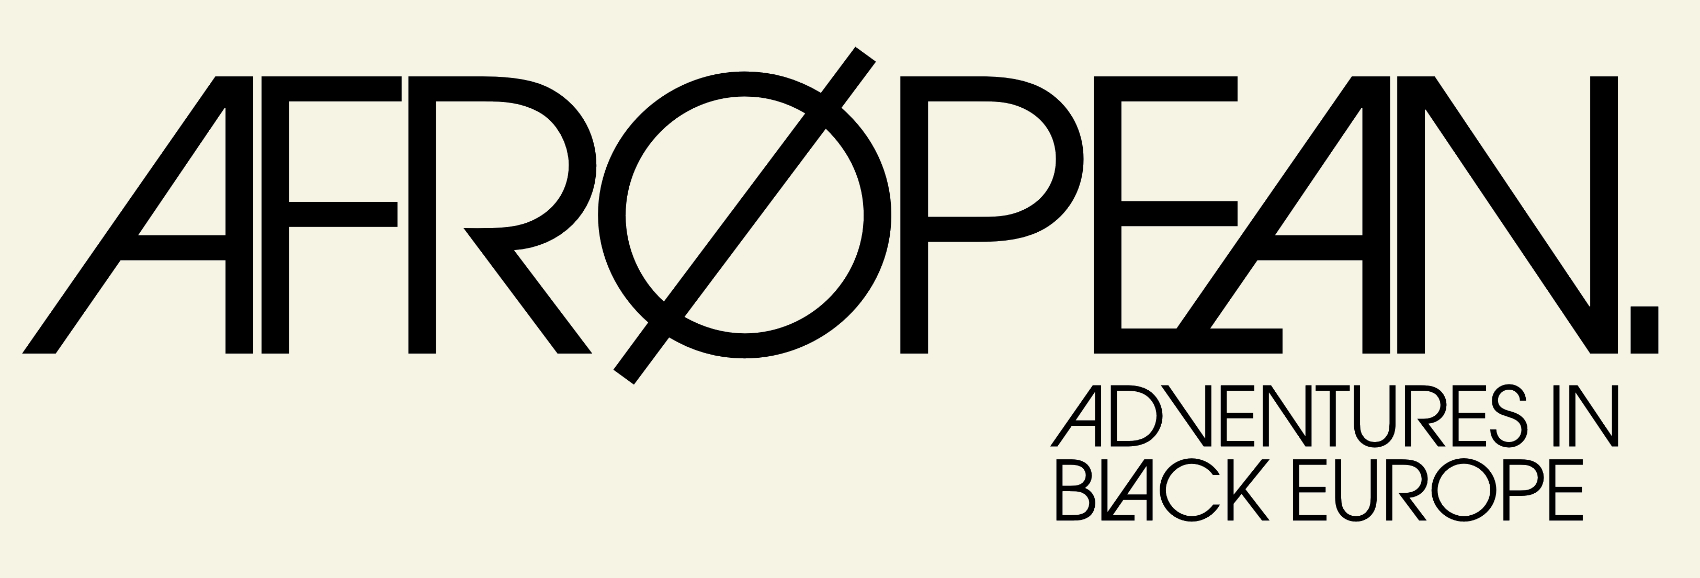 Afropean – Adventures in Black Europe: your guide to the Afro European diaspora and beyond - Adventures in Afro Europe